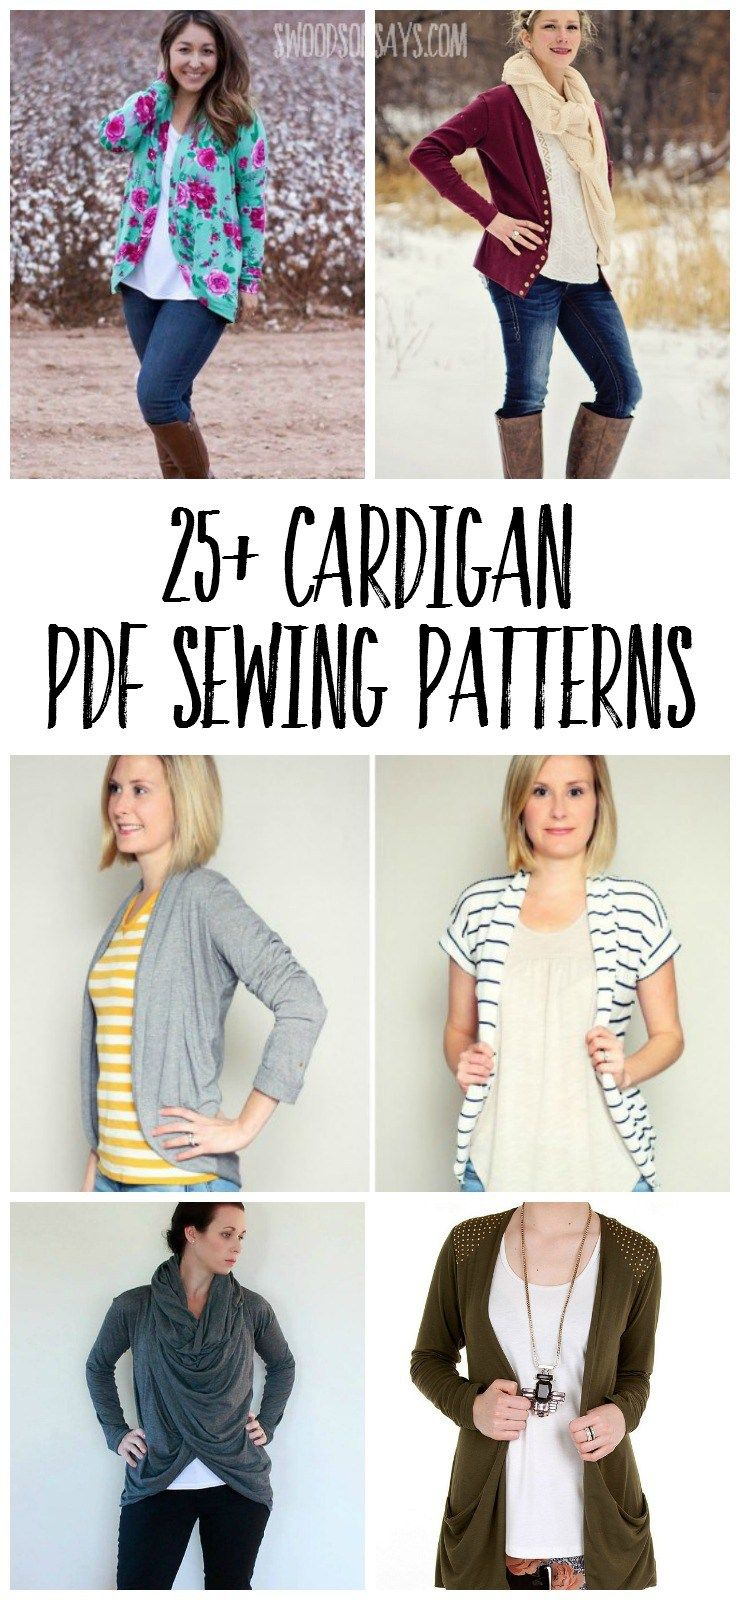 25+ cardigan patterns to sew - Pdf sewing patterns, Sewing patterns, Fall sewing, Cardigan pattern, Clothing patterns, Sewing clothes - I love cardigans! As a nursing mom (list of nursingfriendly PDF patterns in this post!), they're perfect for layering and I started digging around for all my options in the PDF sewing world  Since I